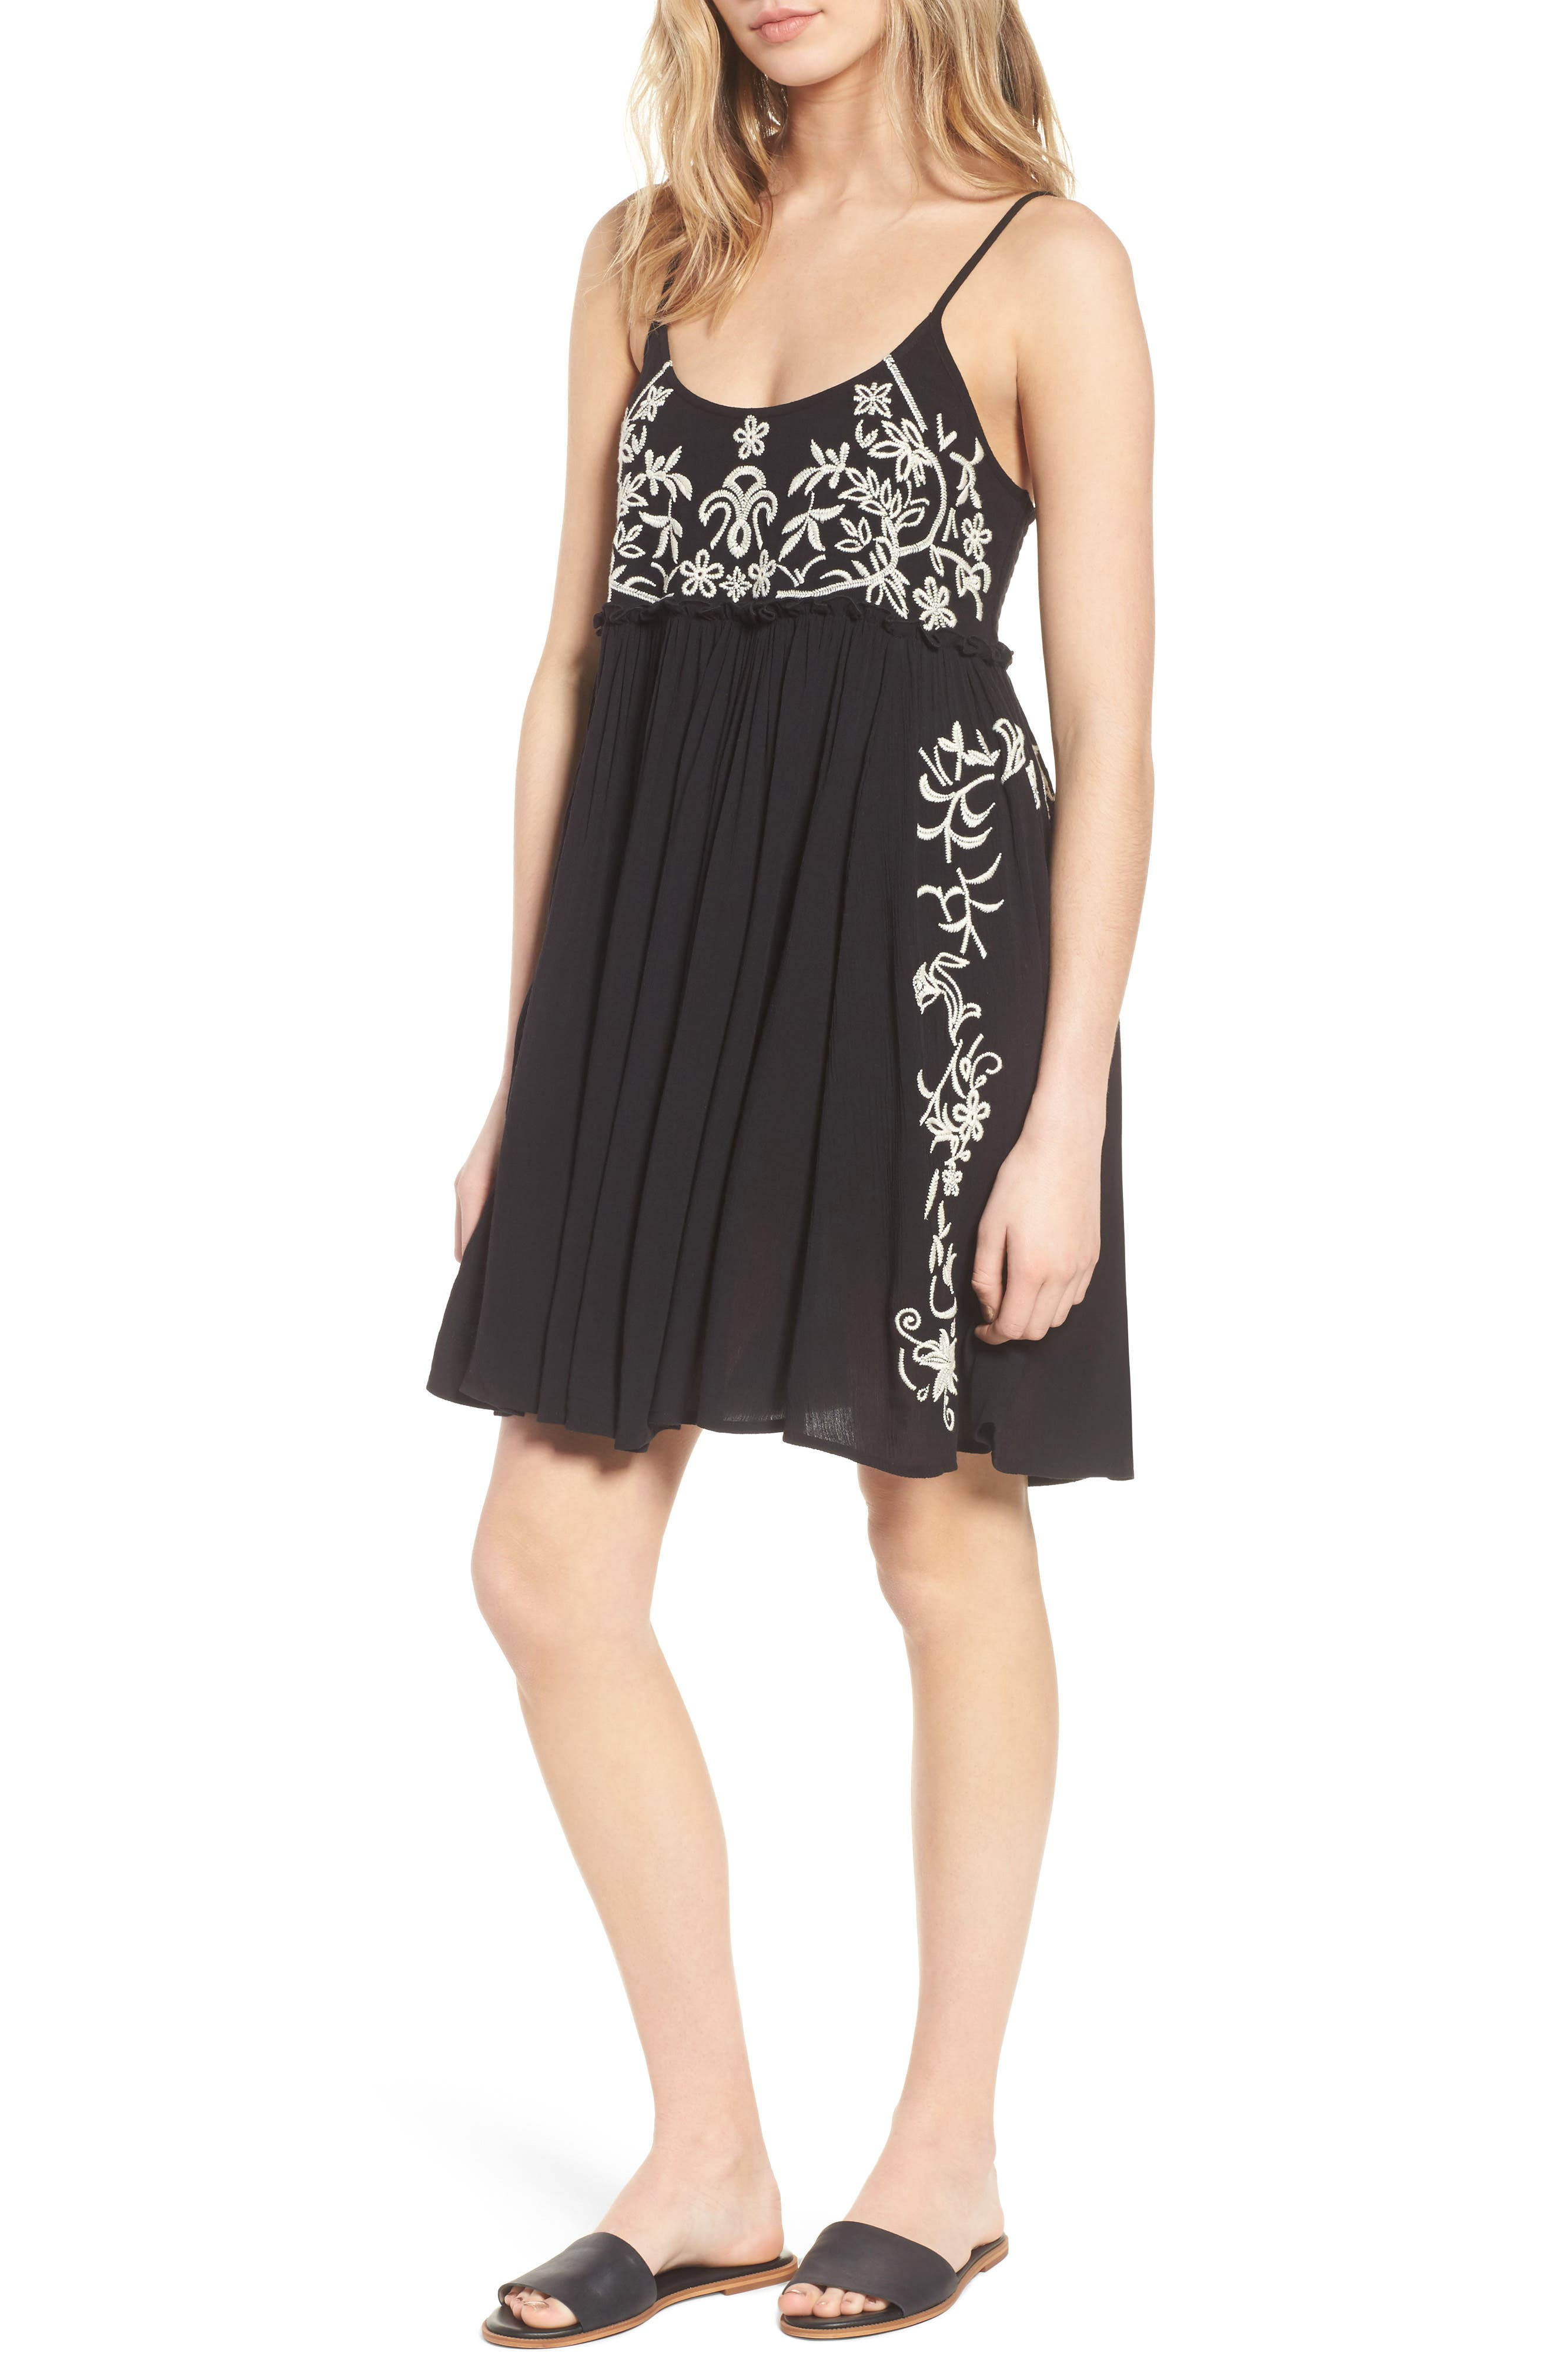 Embroidered Babydoll Dress,                         Main,                         color, Black/ Ivory